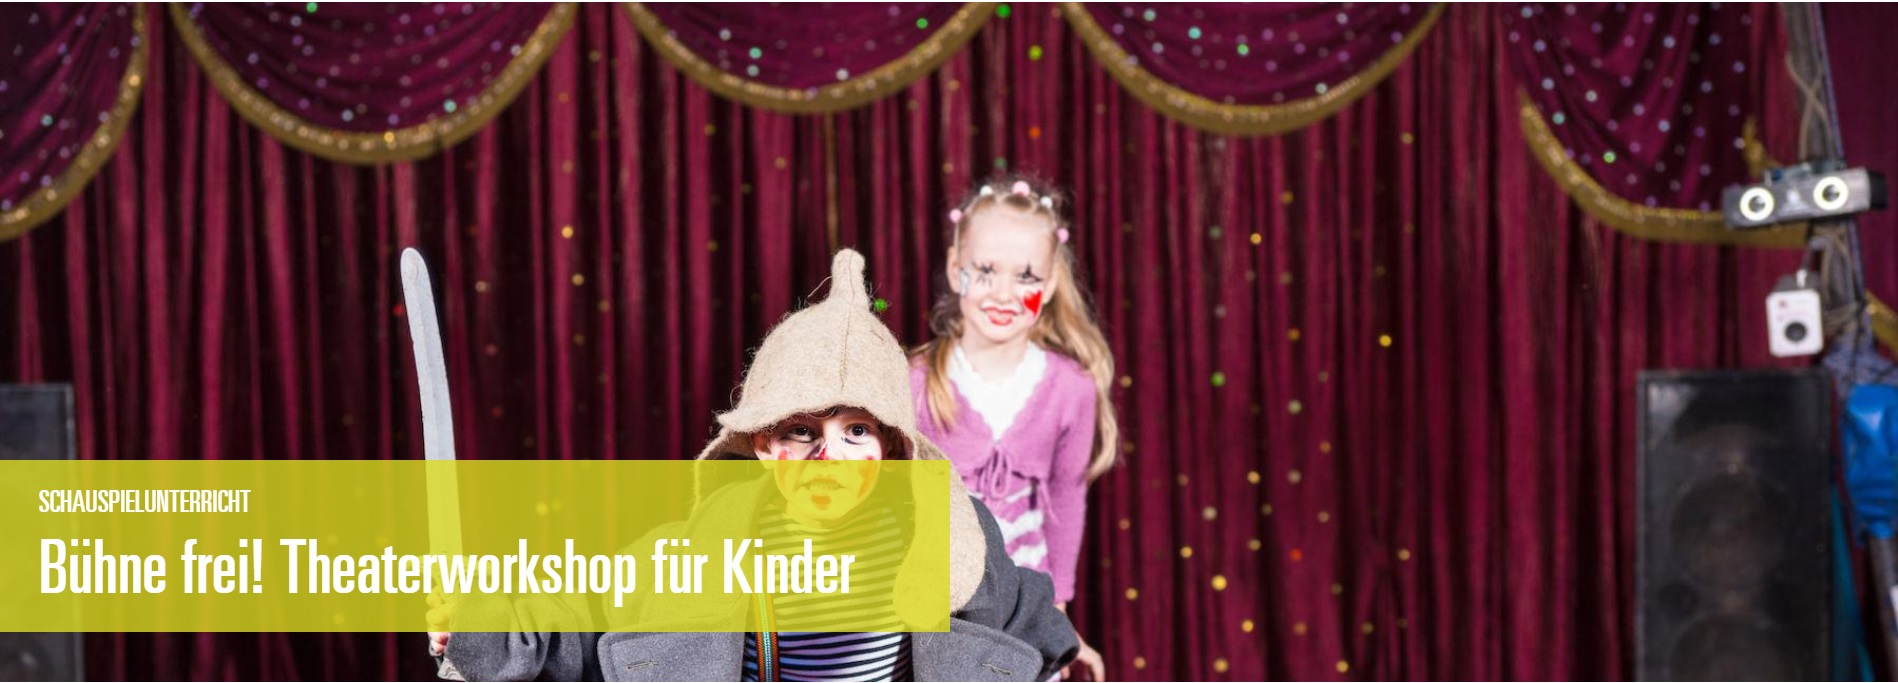 buehne-frei-theaterworkshop-fuer-kinder-minis-kids